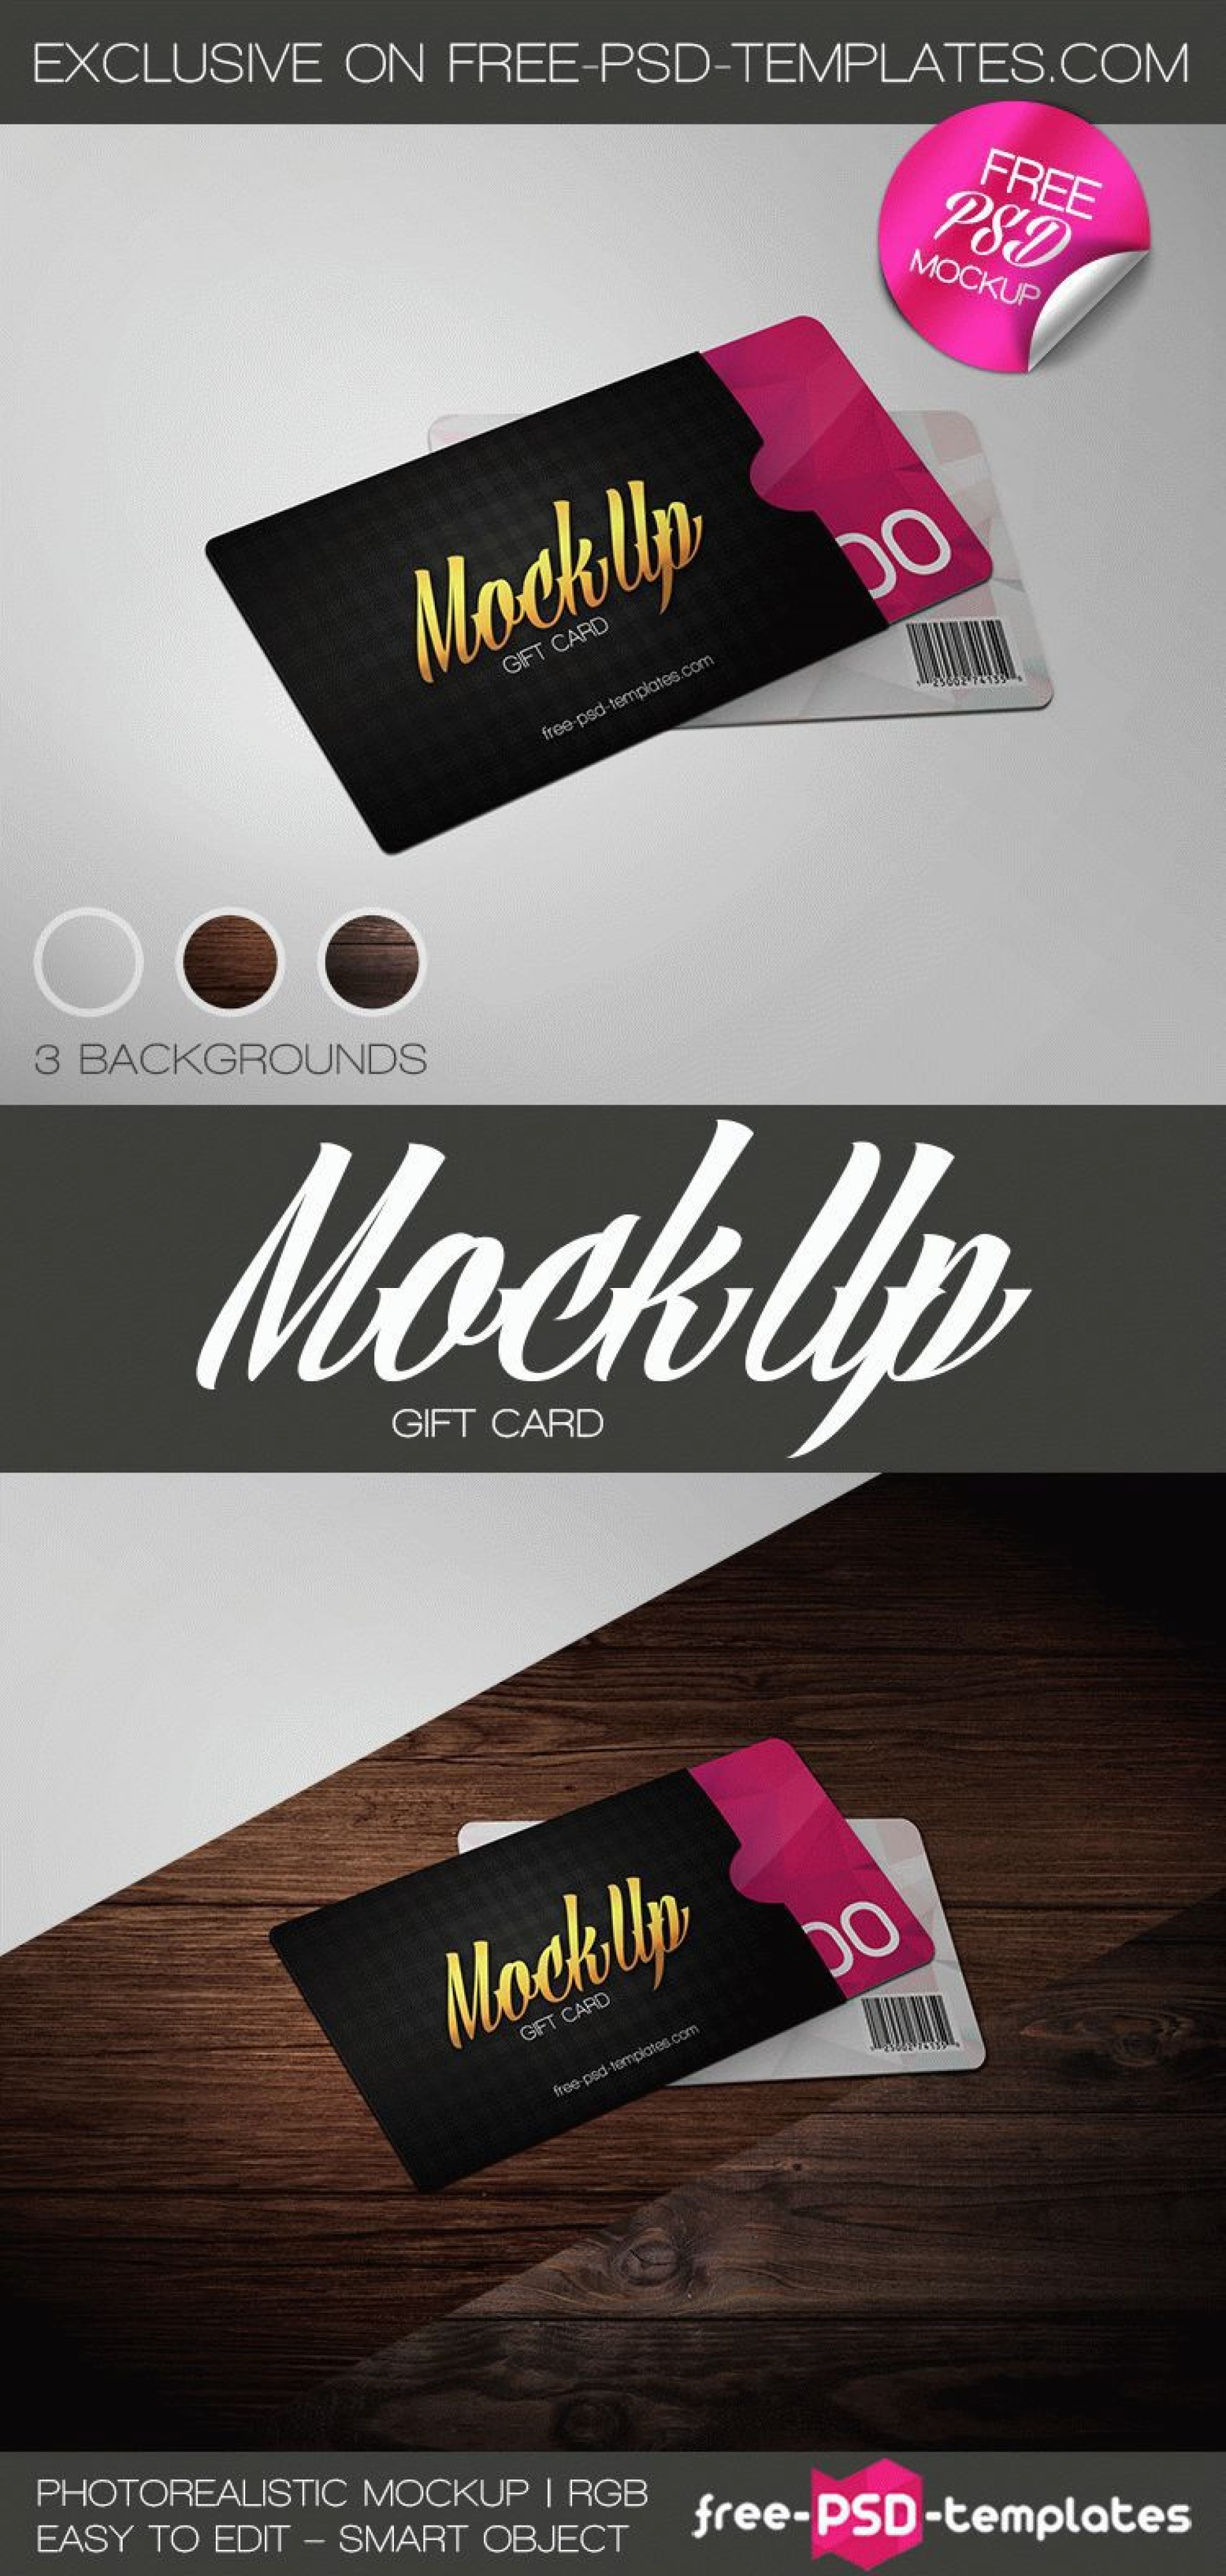 001 Simple Gift Card Template Psd Image  Christma Photoshop Free Holder1920